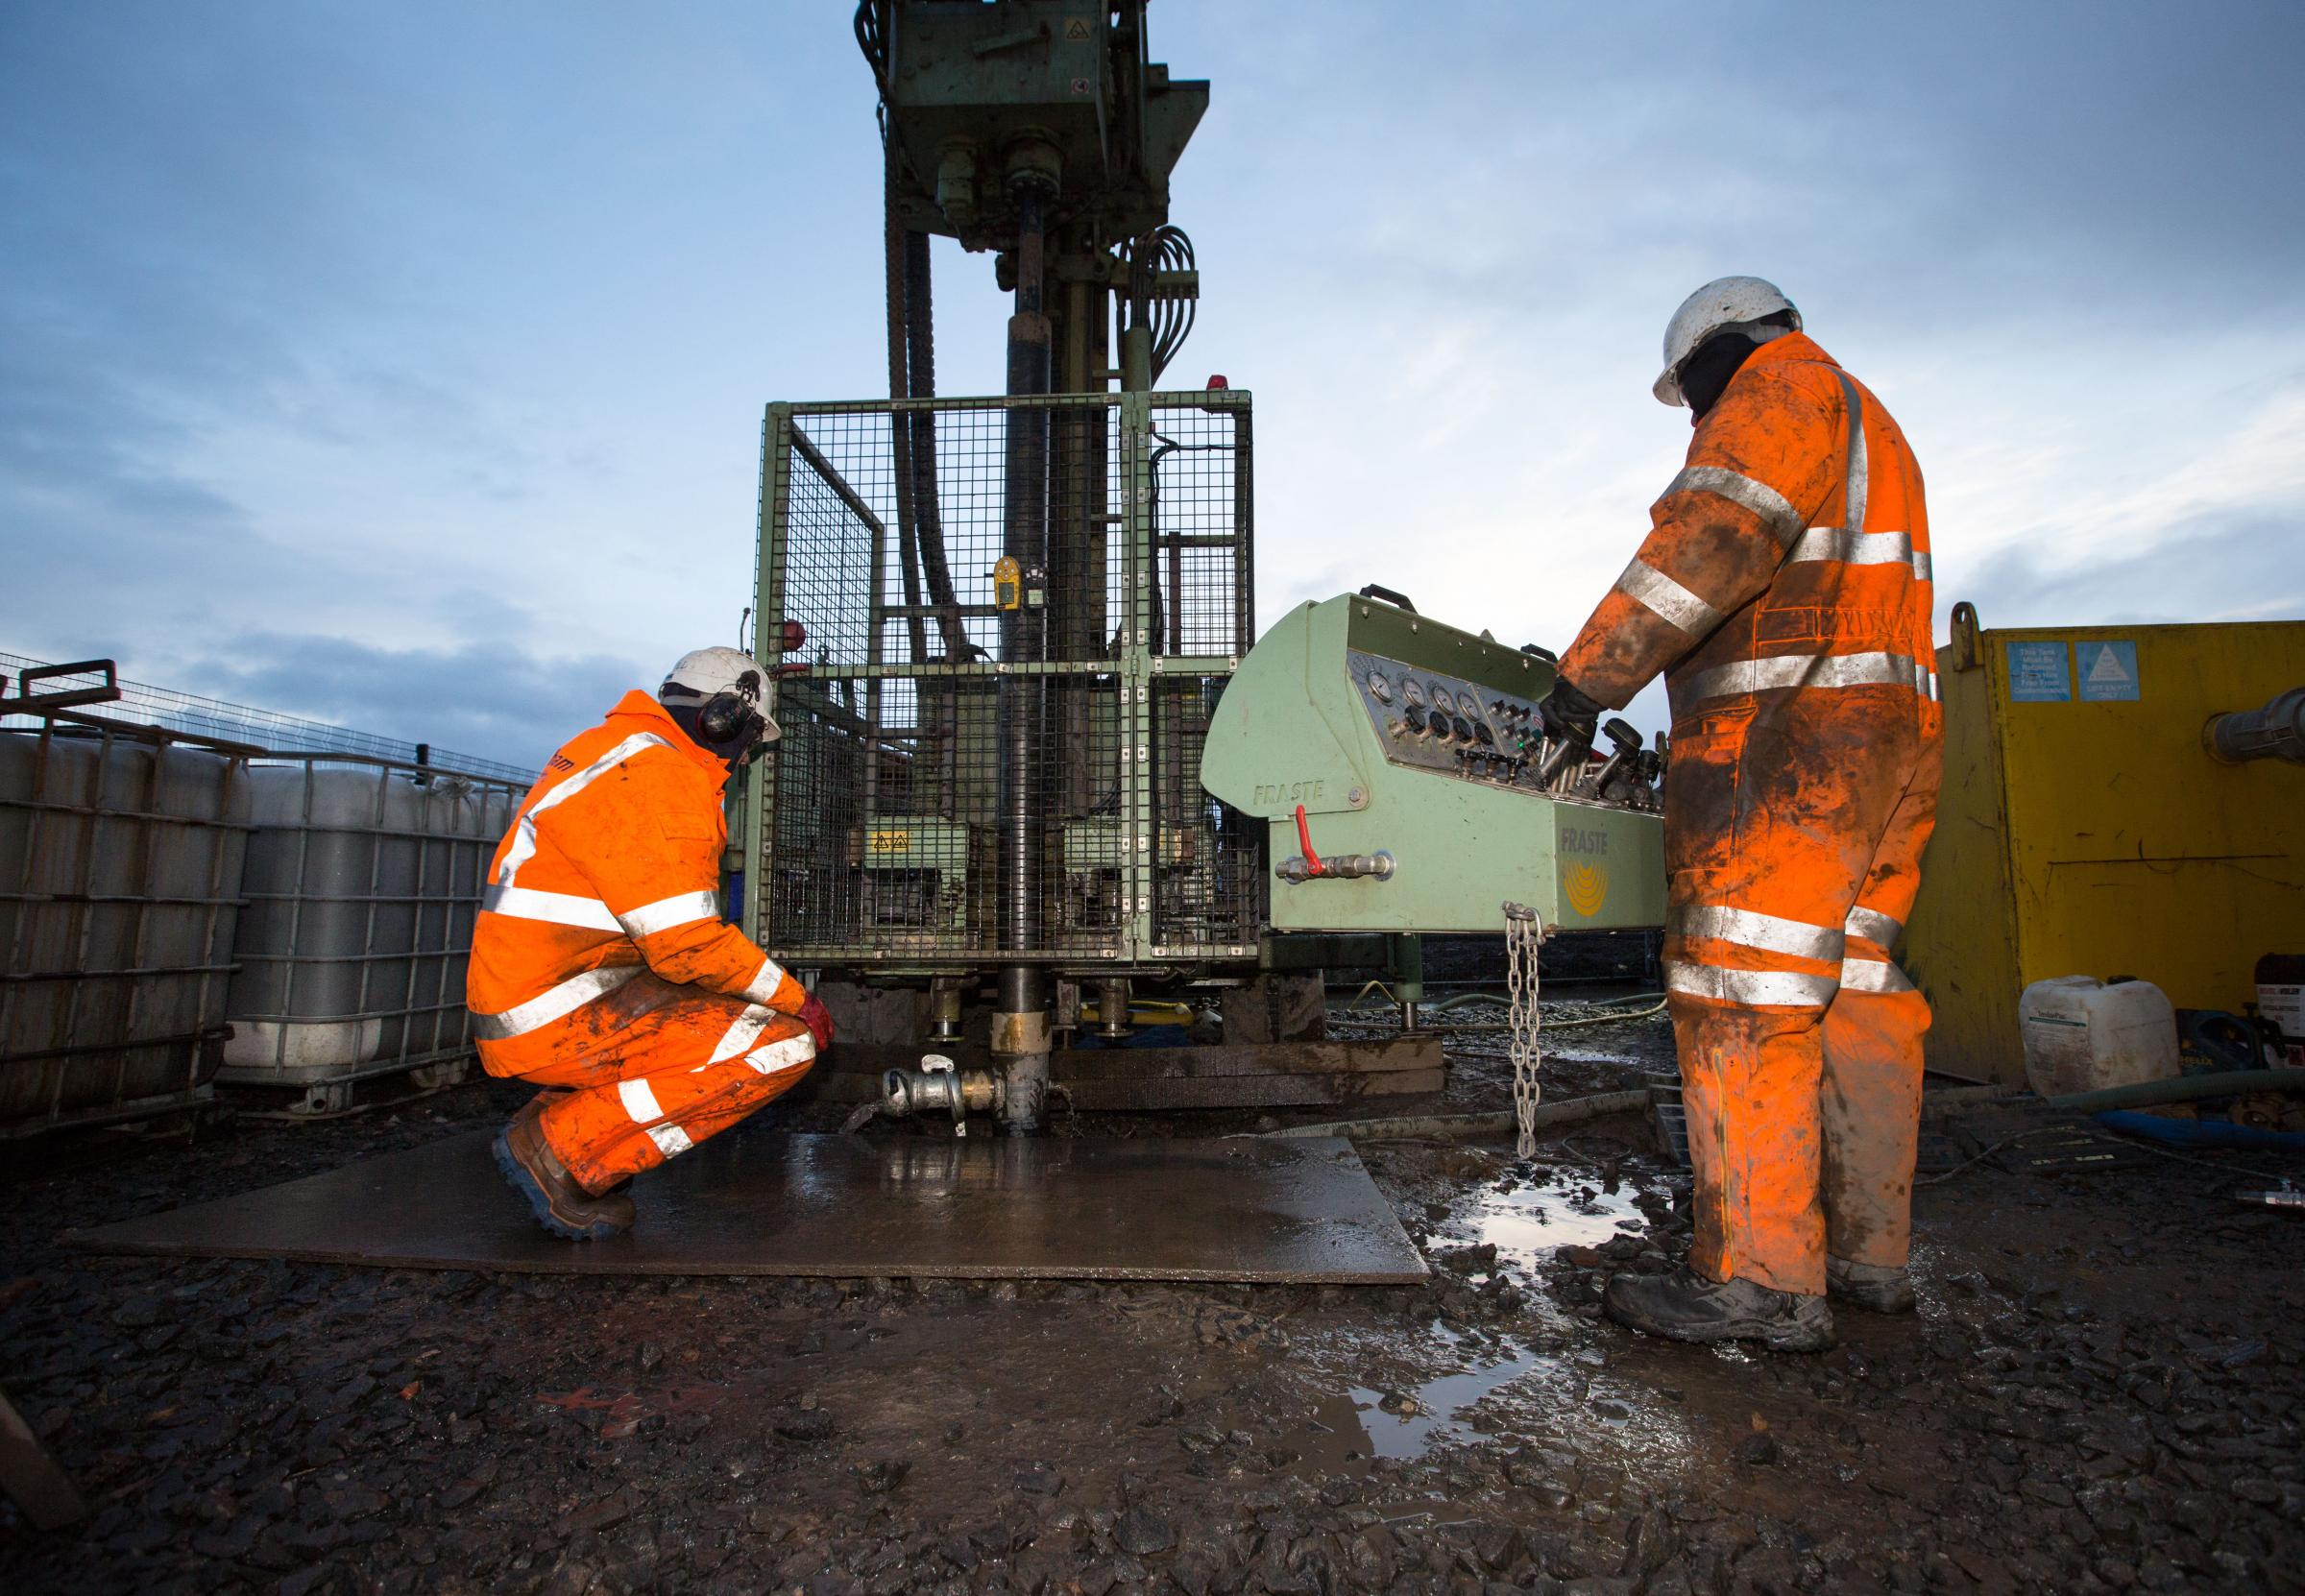 Scientists bid to put Scotland's mines at centre of green energy renaissance